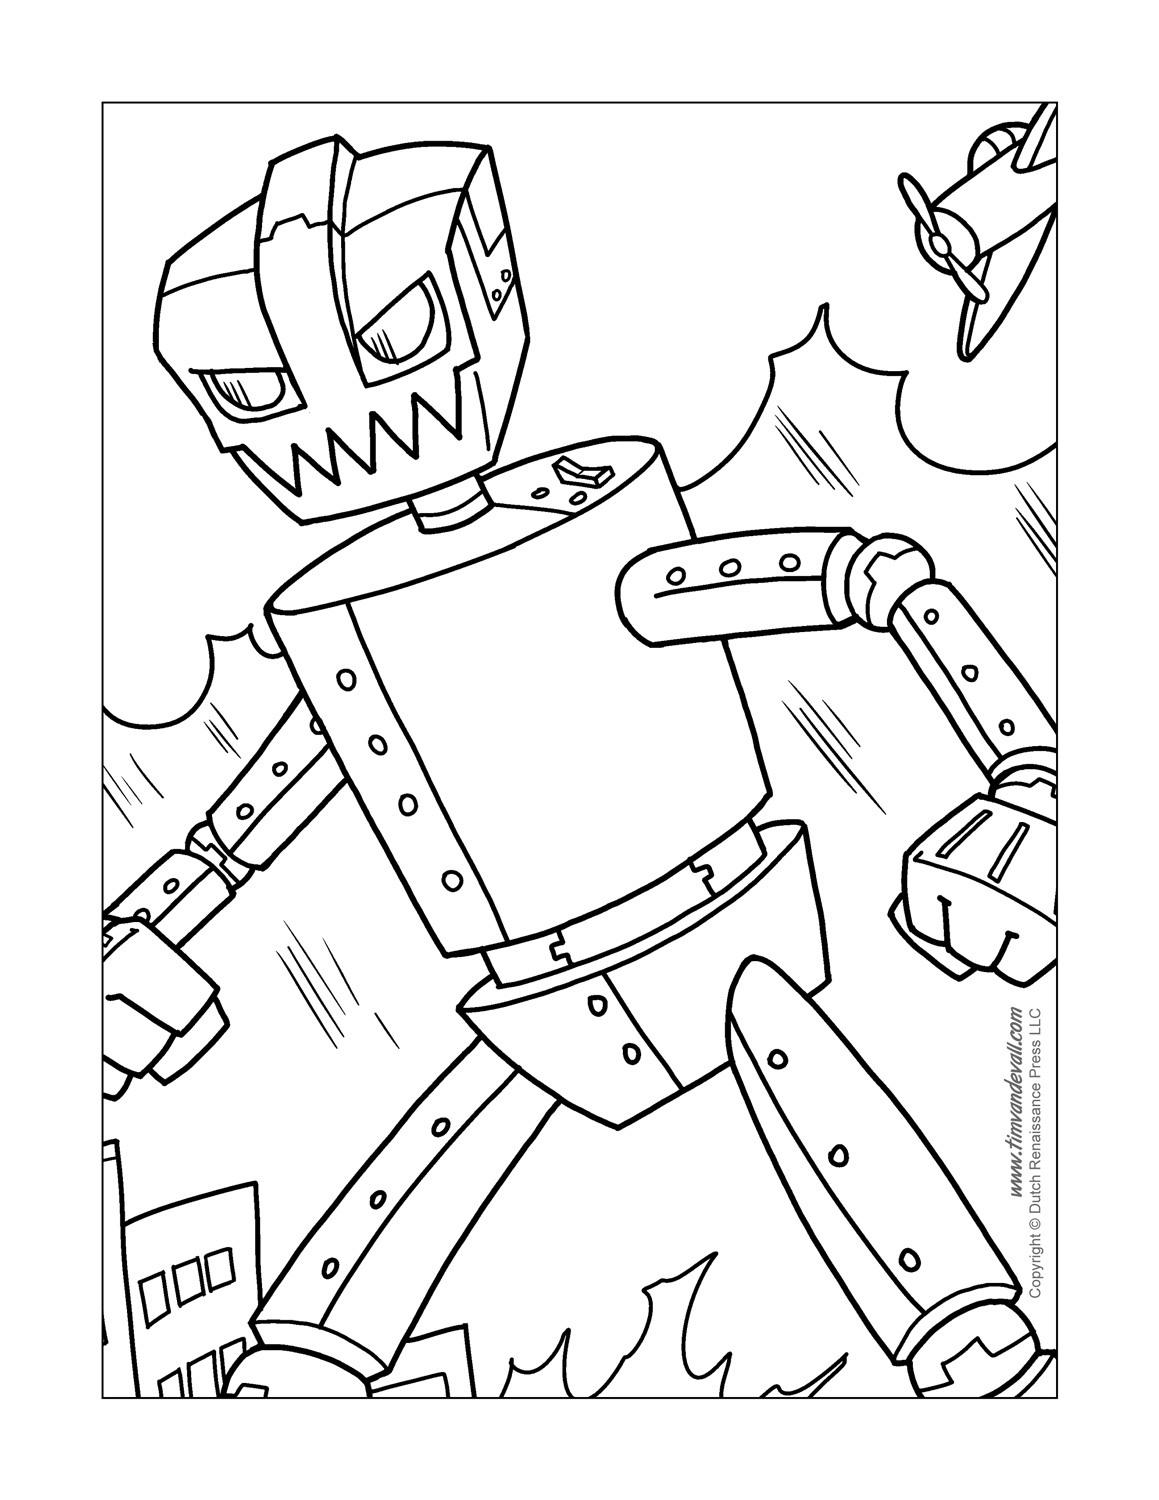 robot coloring picture free printable robot coloring pages for kids cool2bkids picture robot coloring 1 1